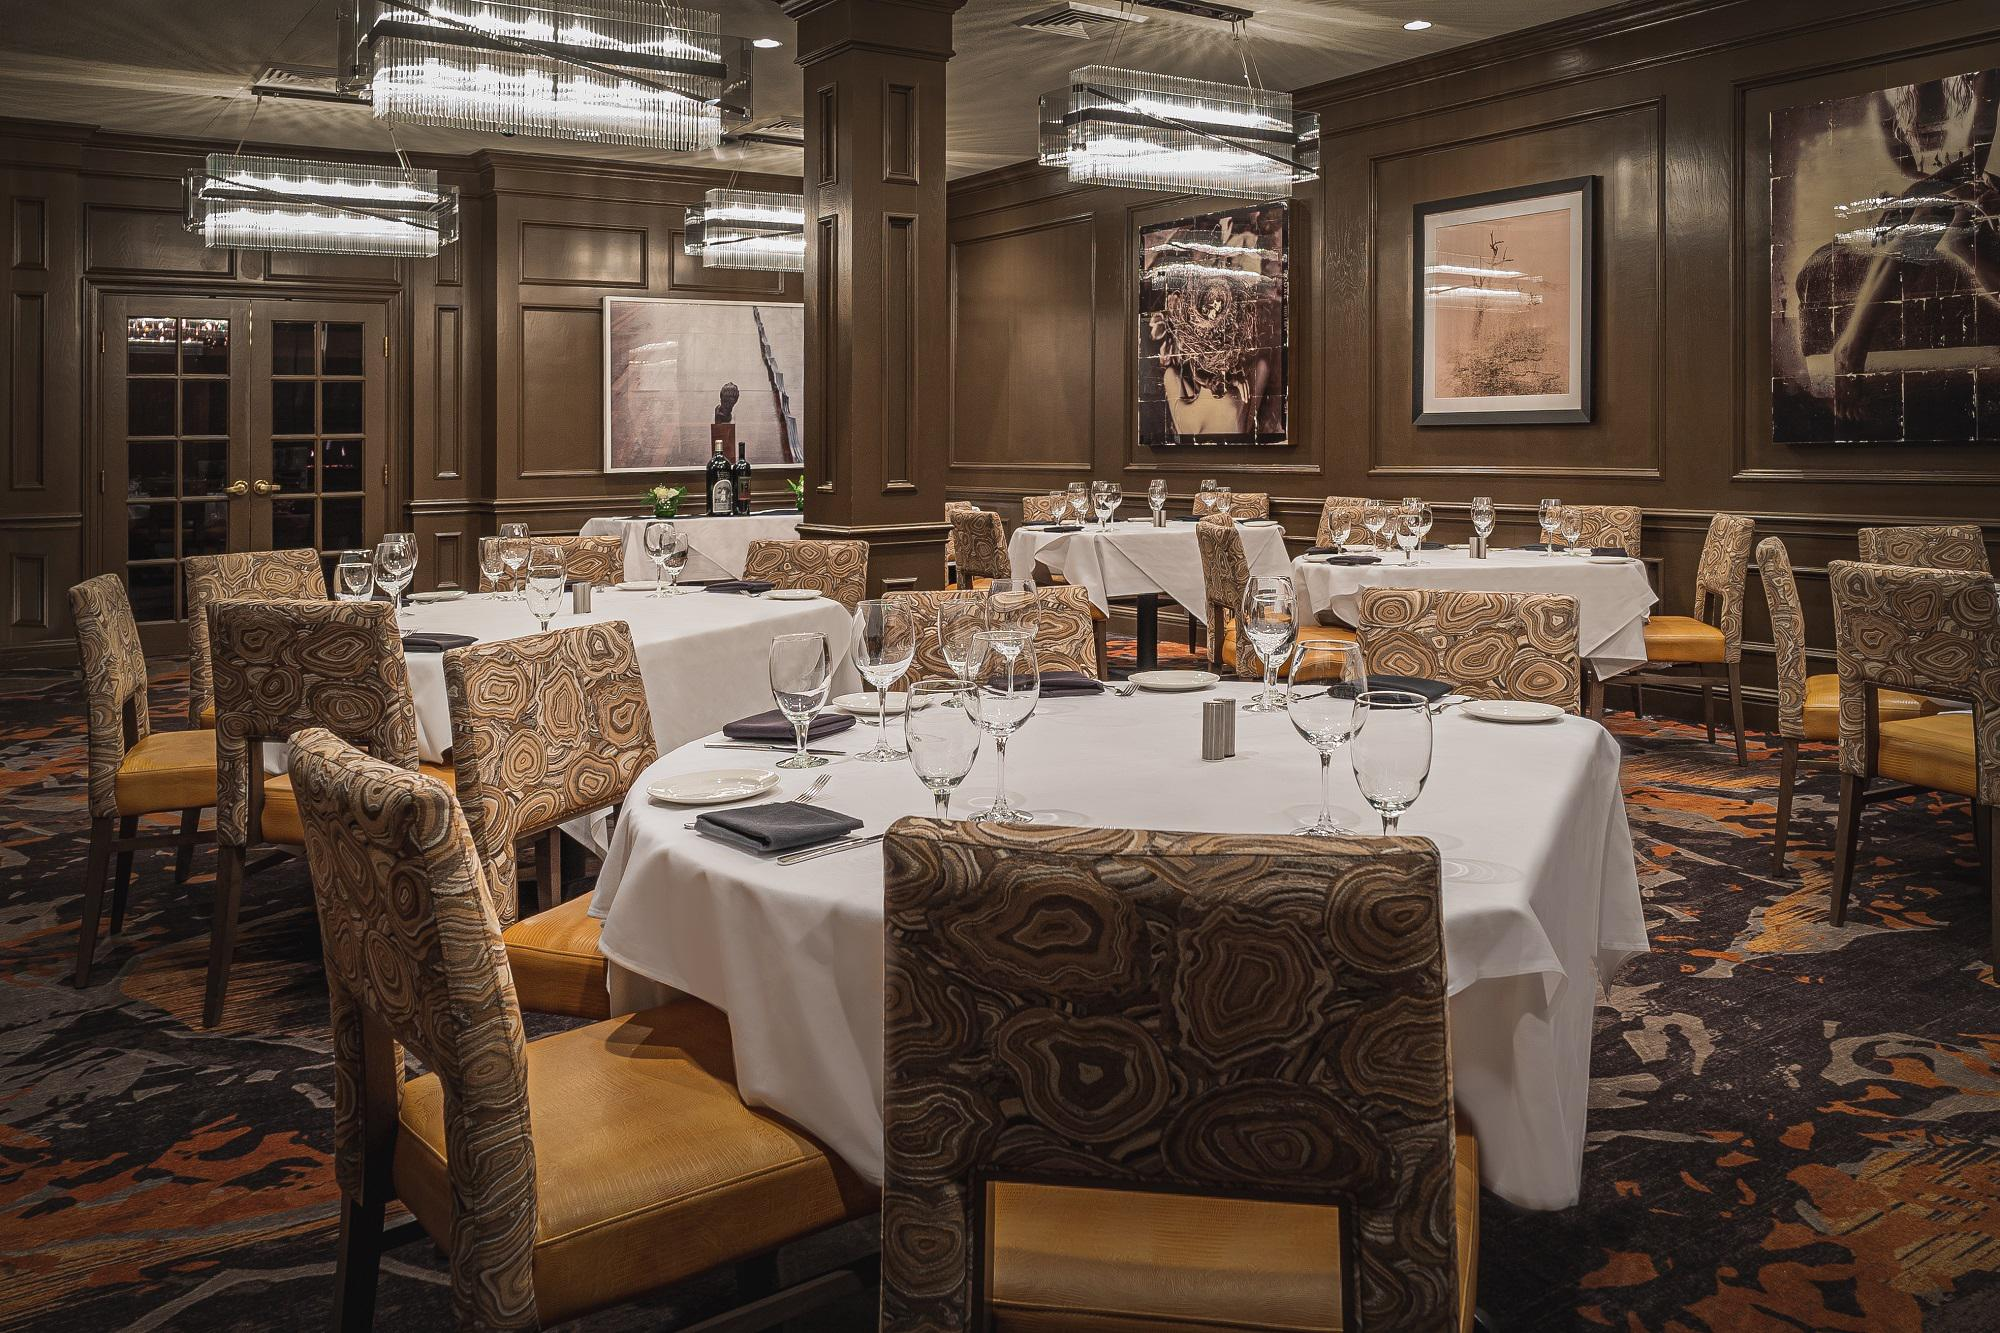 Del Frisco's Double Eagle Steakhouse Denver Lincoln Room private dining room